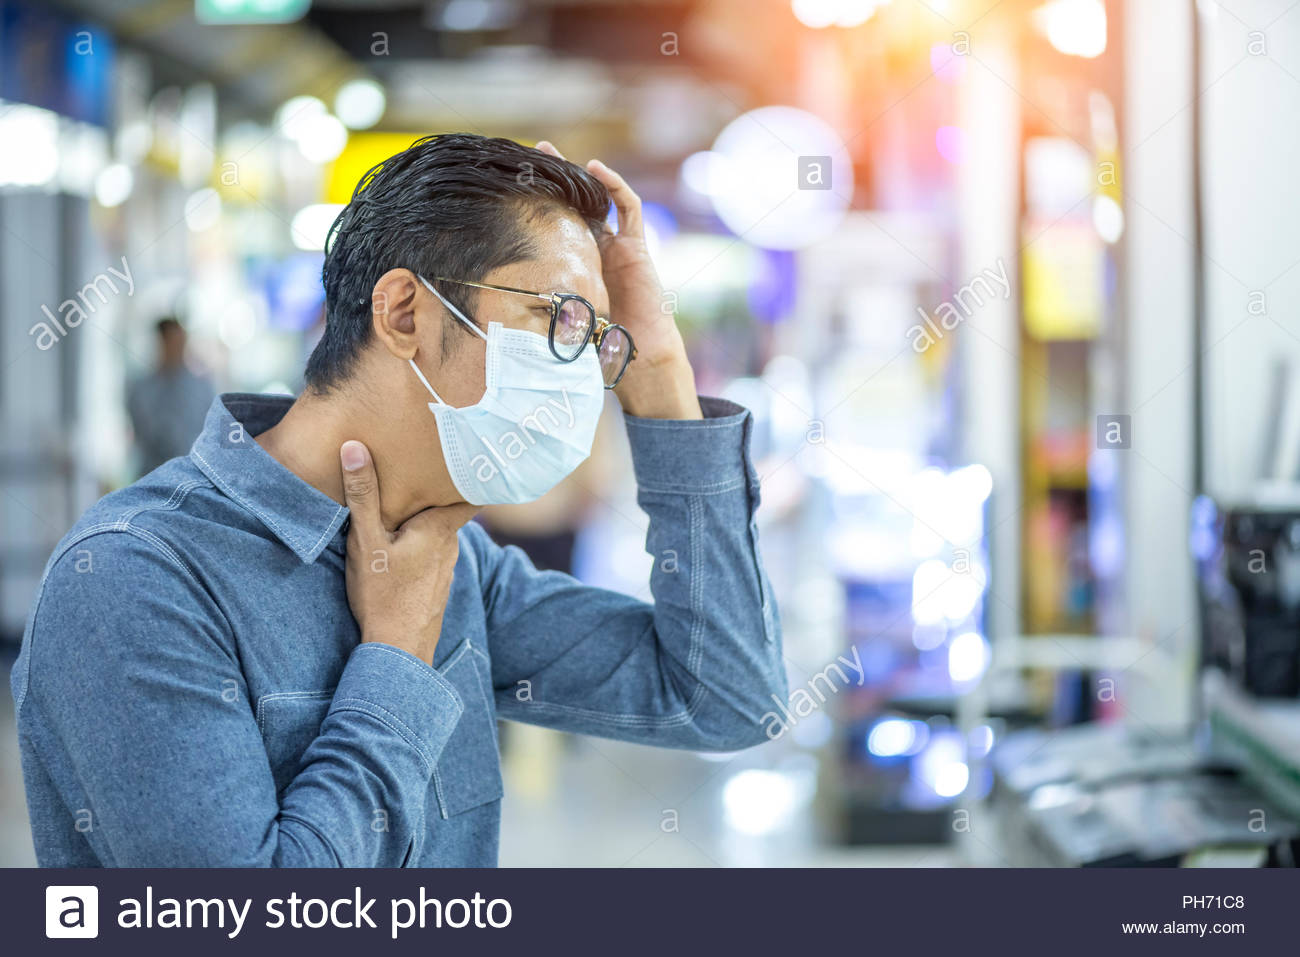 Young man sick and coughing in the public areas, Sick of the flu concept - Stock Image